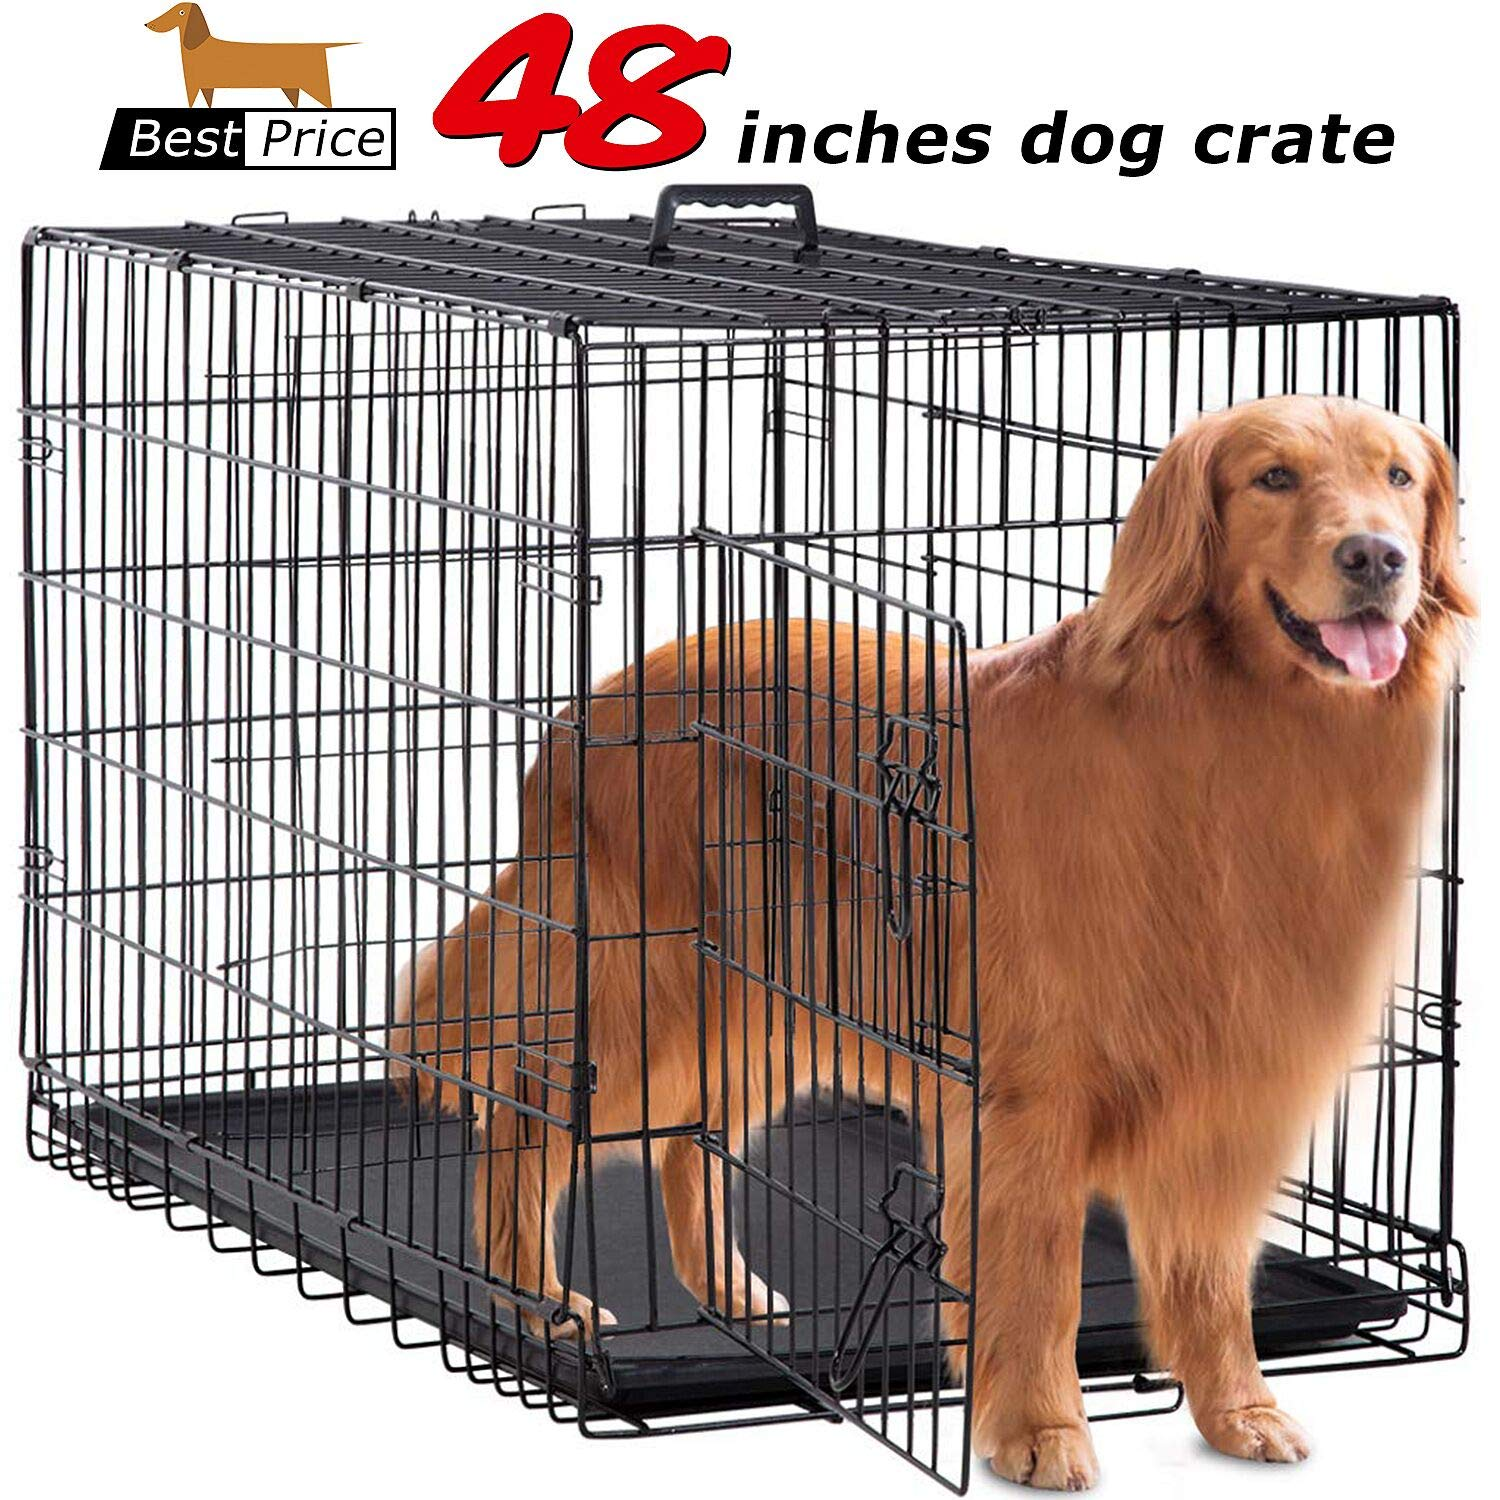 BestPet Large Dog Crate Cage Metal Wire Kennel Double-Door Folding Pet Animal Pet Cage with Plastic Tray & Handle, 48'' by BestPet